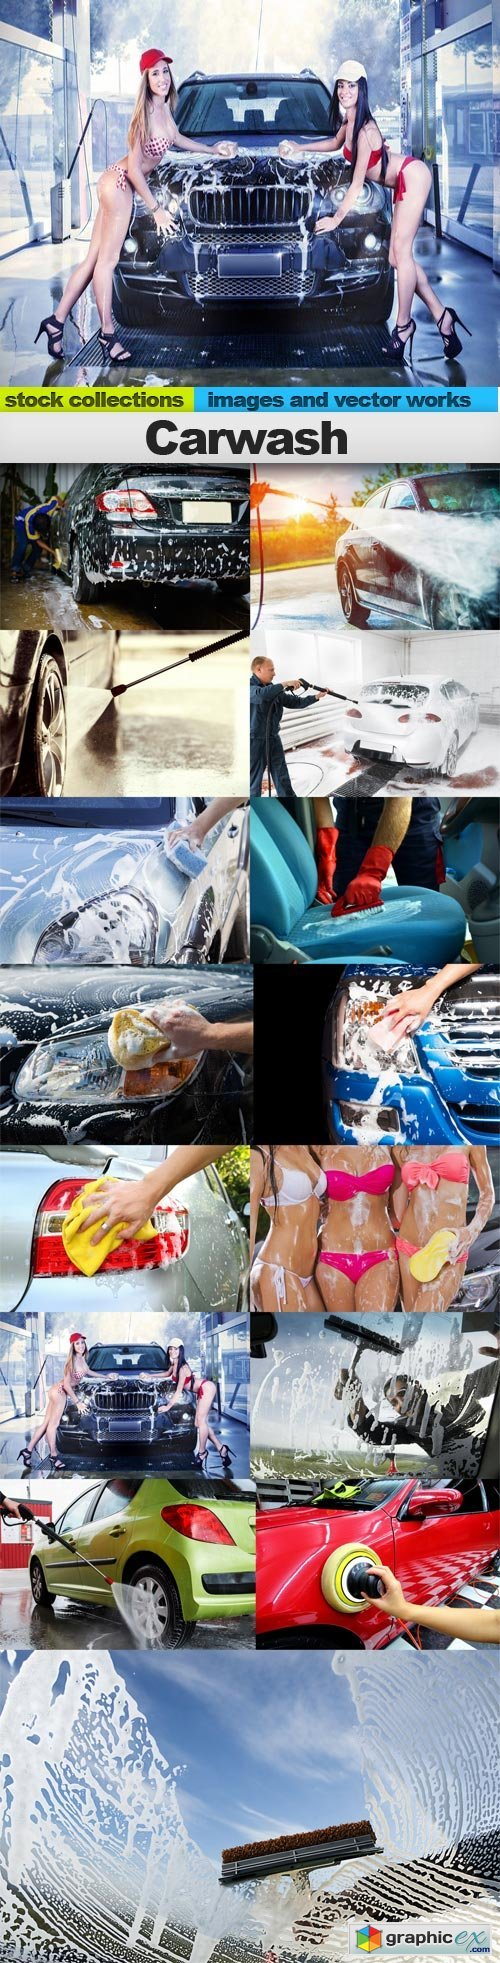 Carwash, 15 x UHQ JPEG